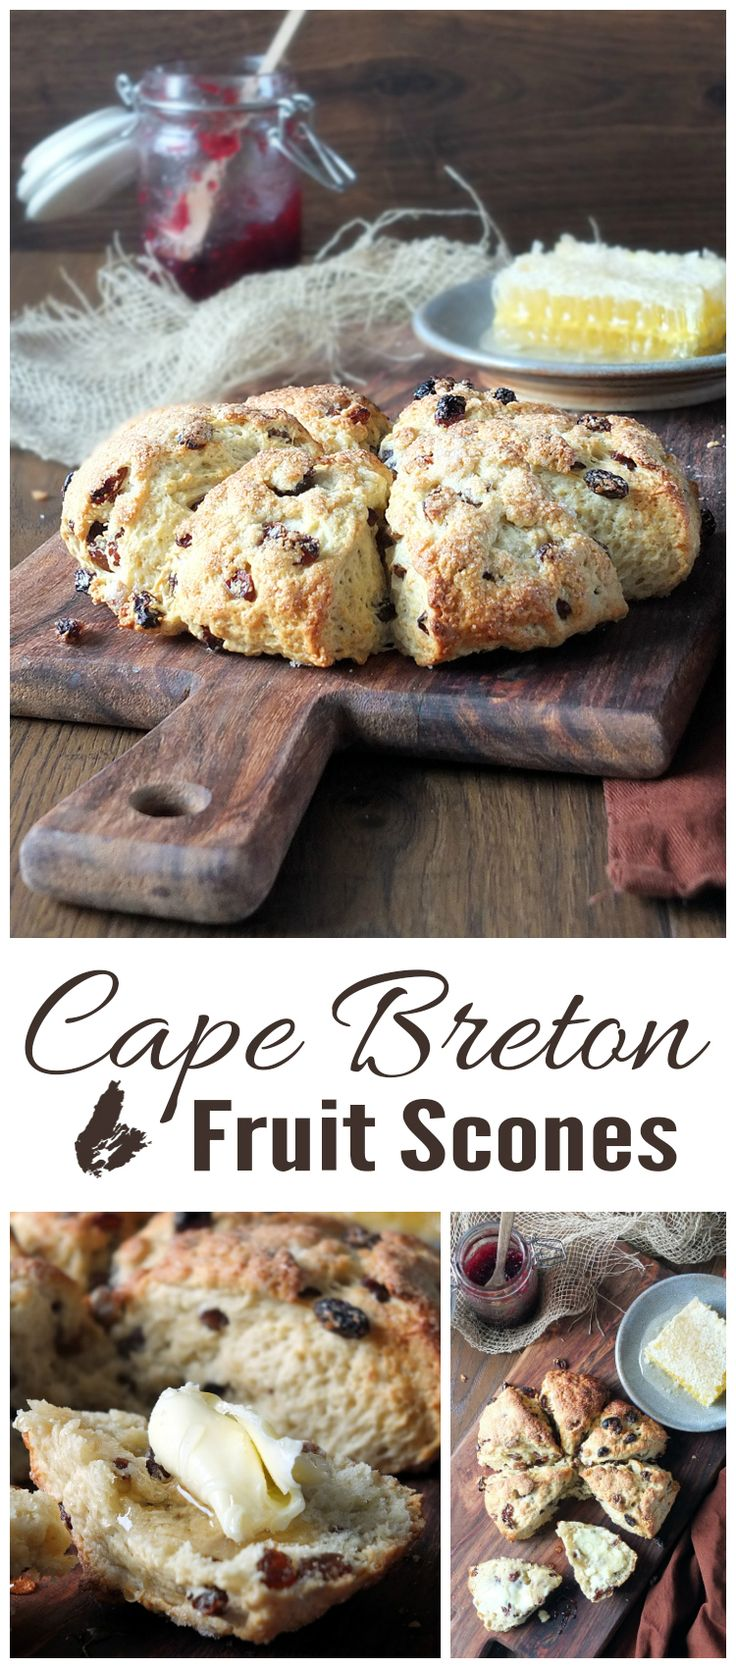 A traditional 'down east' Cape Breton fruit scone recipe. Delicious served warm with butter and honey or jam.